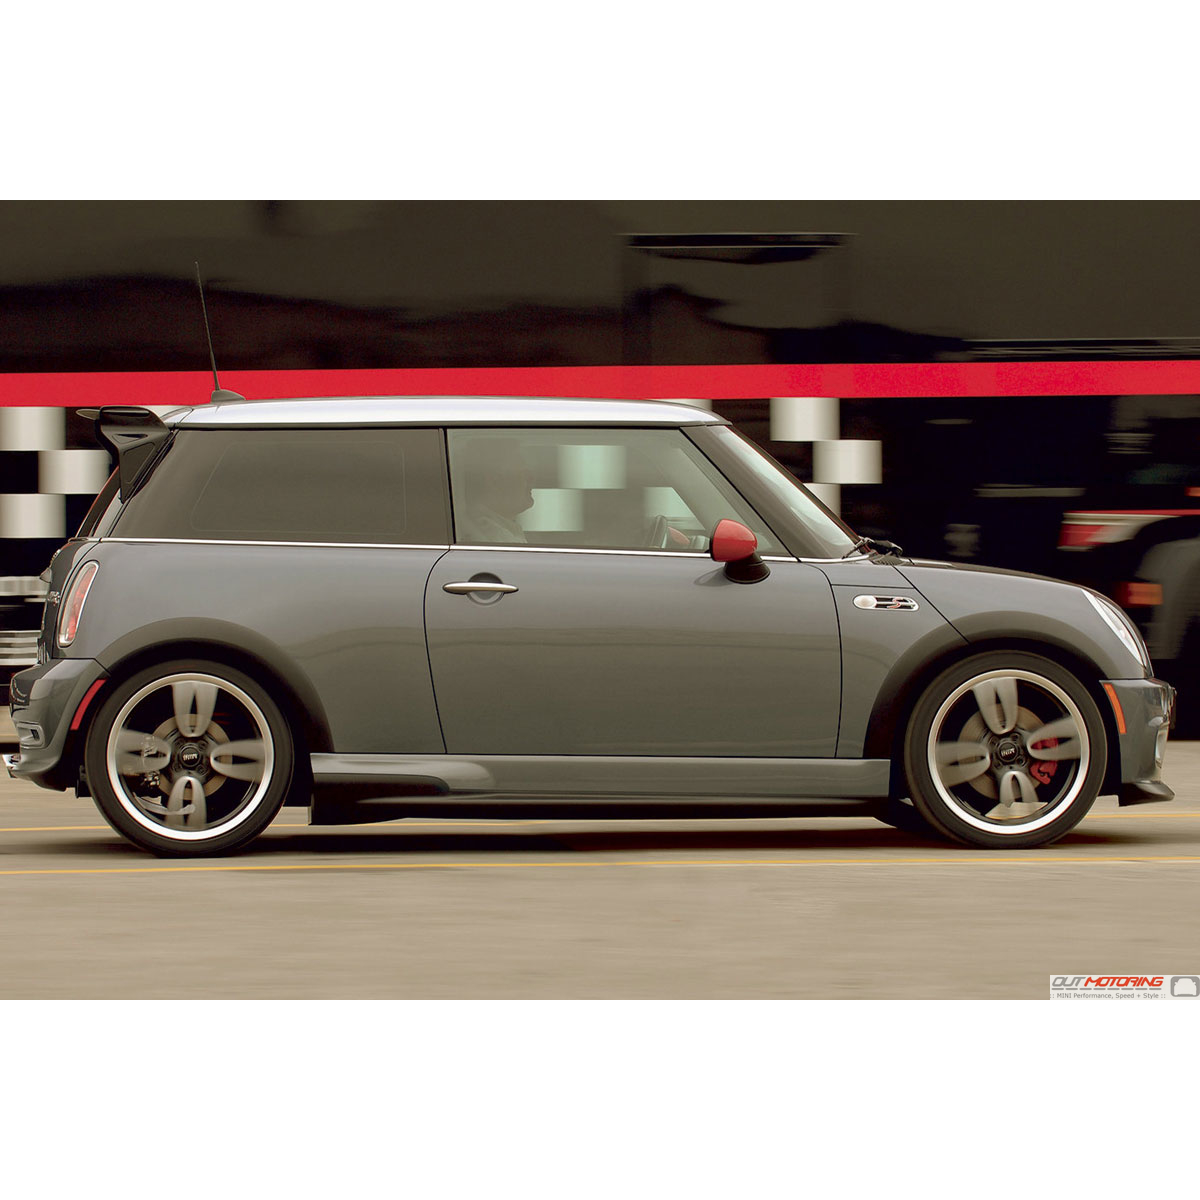 51777182557 mini cooper gp jcw aero kit side skirts rocker panels mini cooper accessories Mini cooper exterior accessories